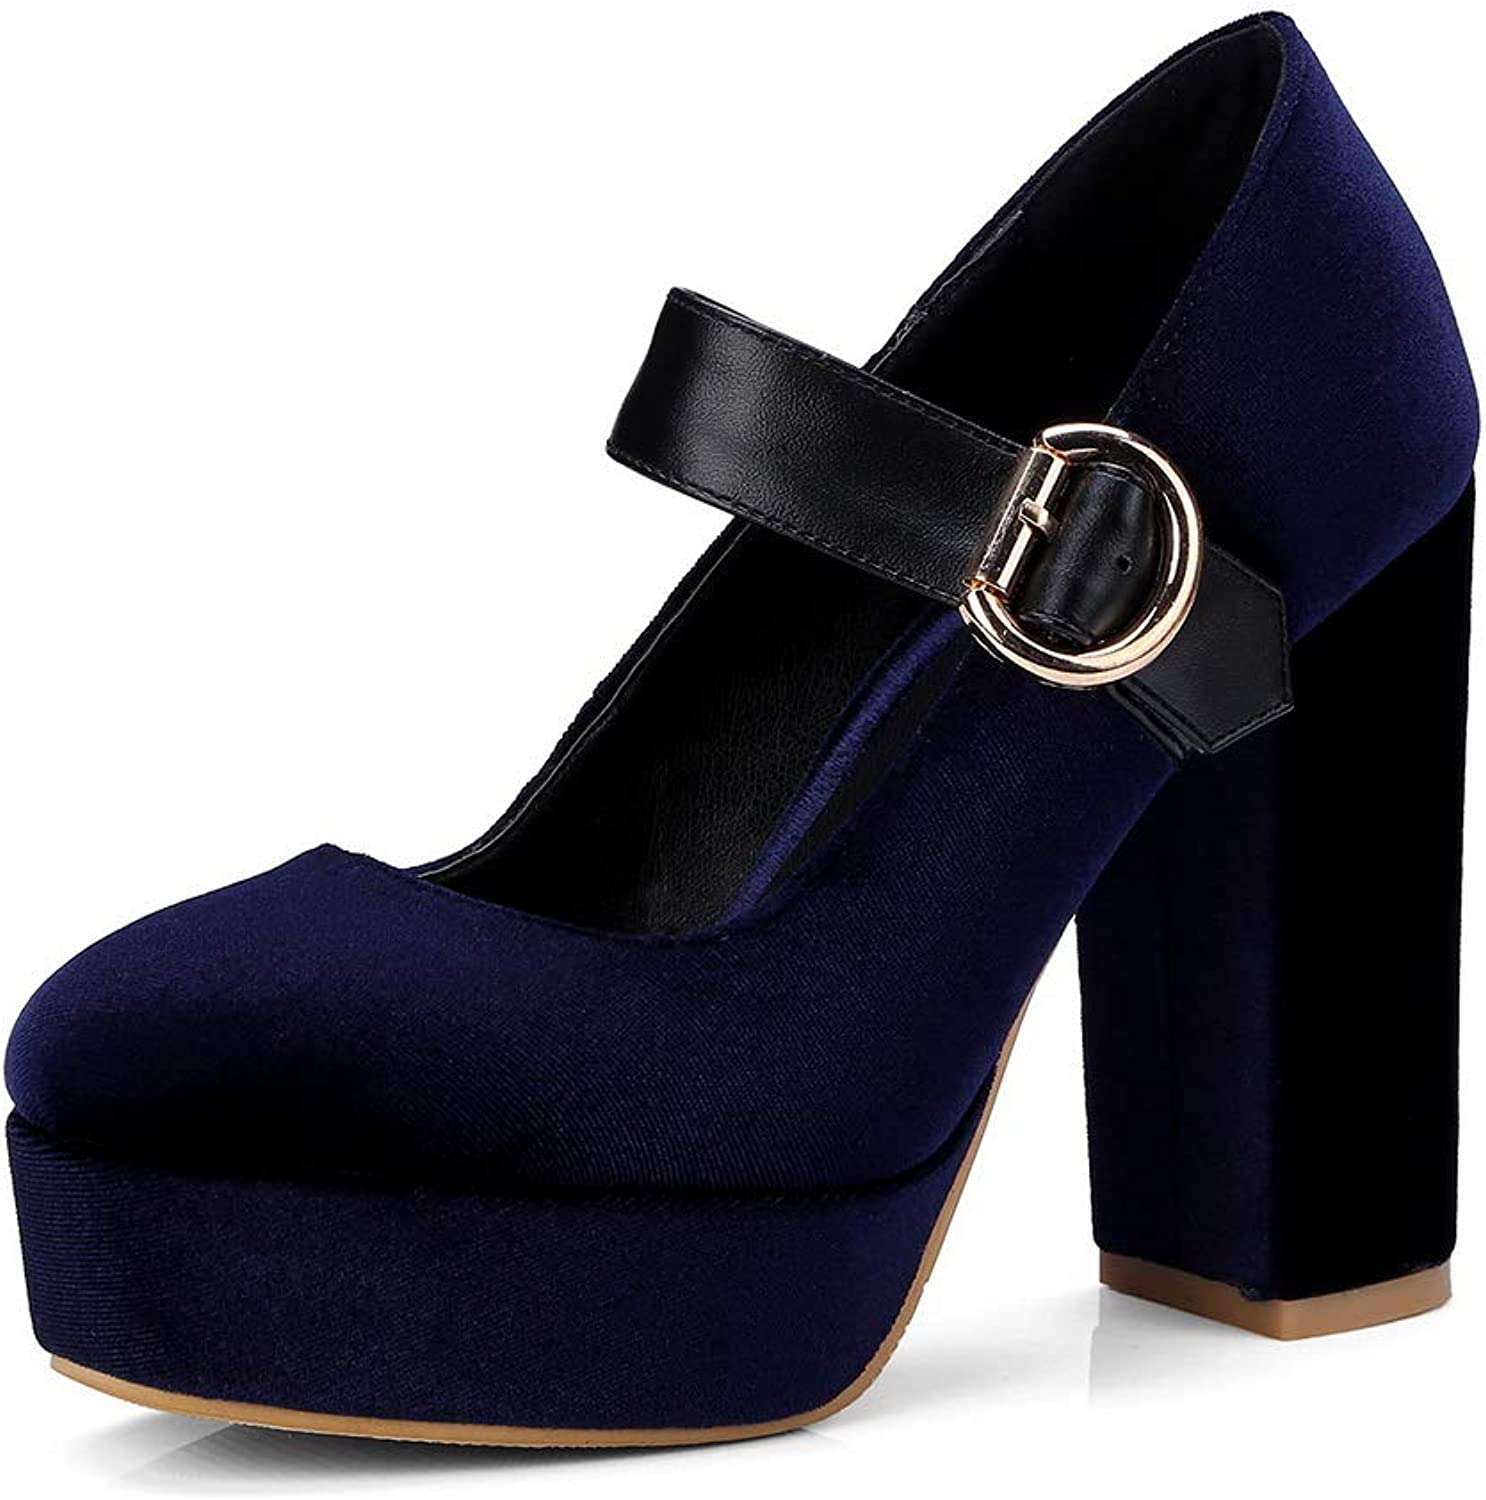 AN Womens Buckle Chunky Heels Platform Imitated Suede Pumps shoes DGU00730